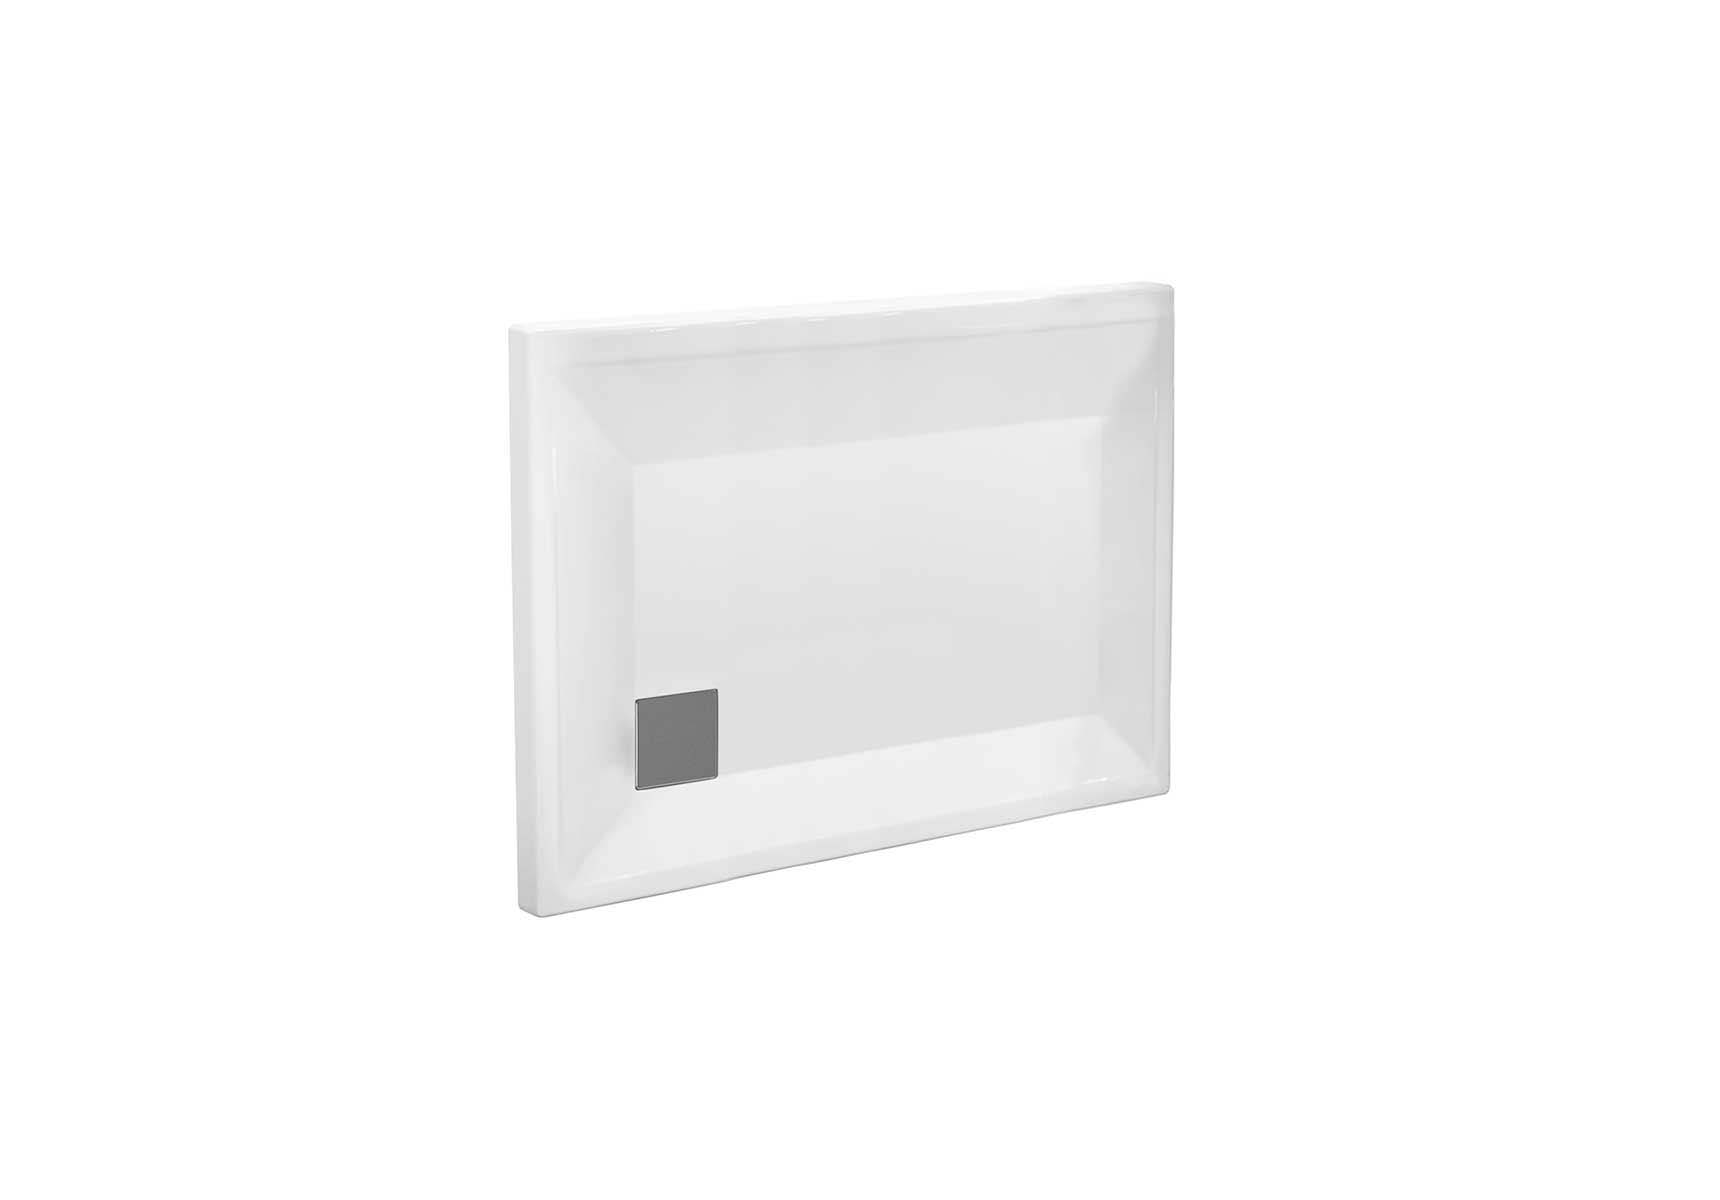 T90 120x90 Rectangular Monoflat Shower Tray